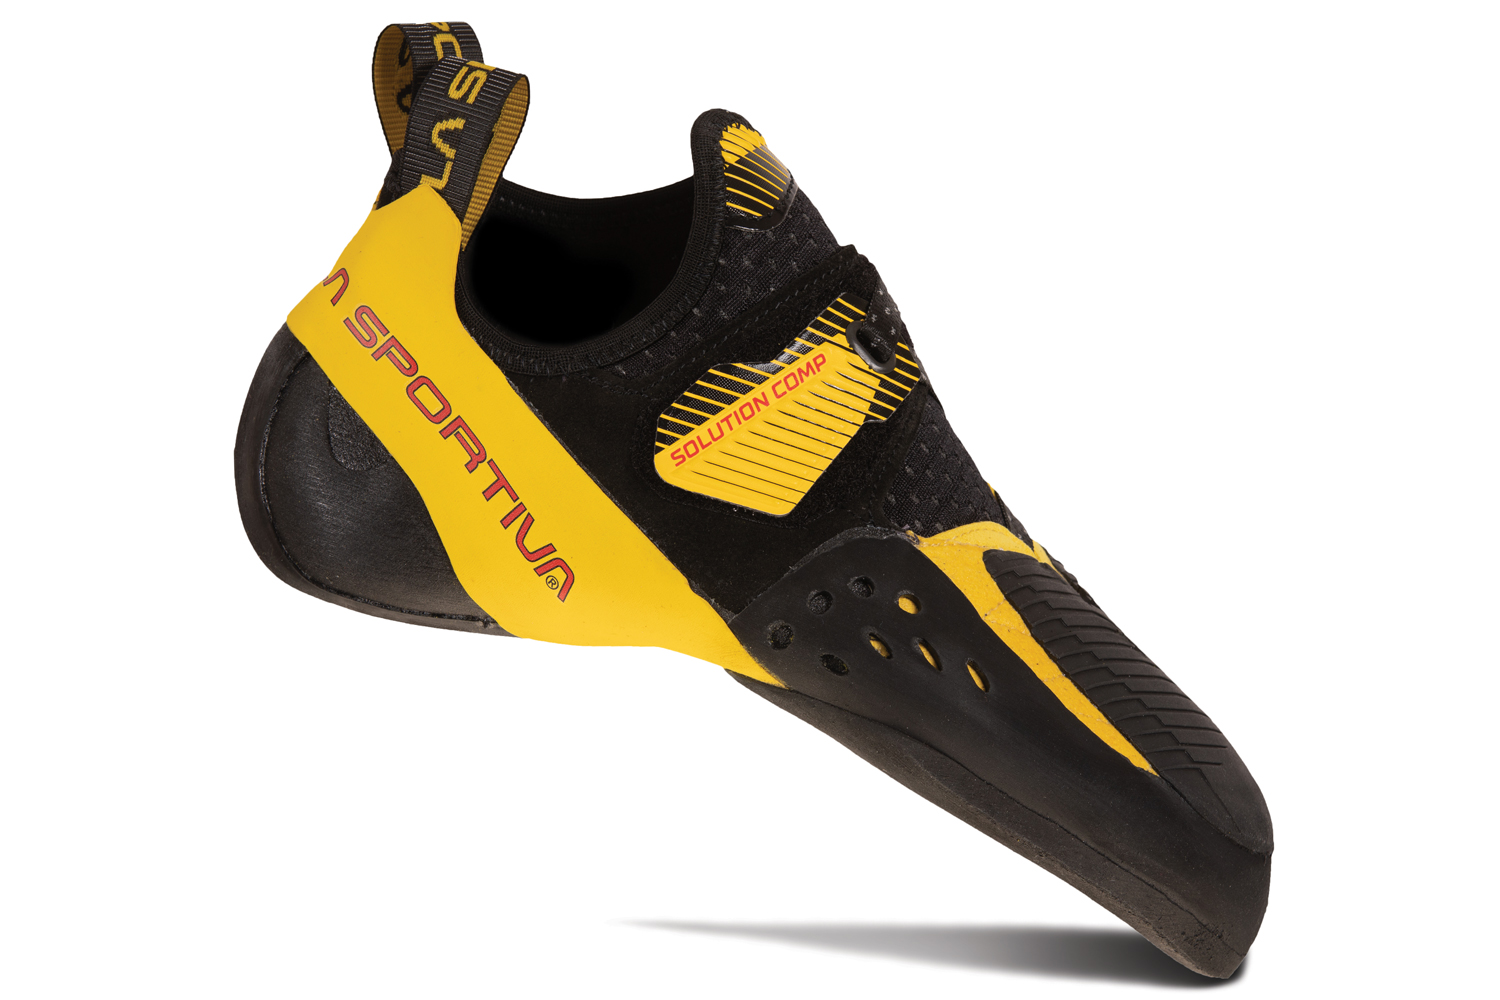 The Best Climbing Shoes of 2020